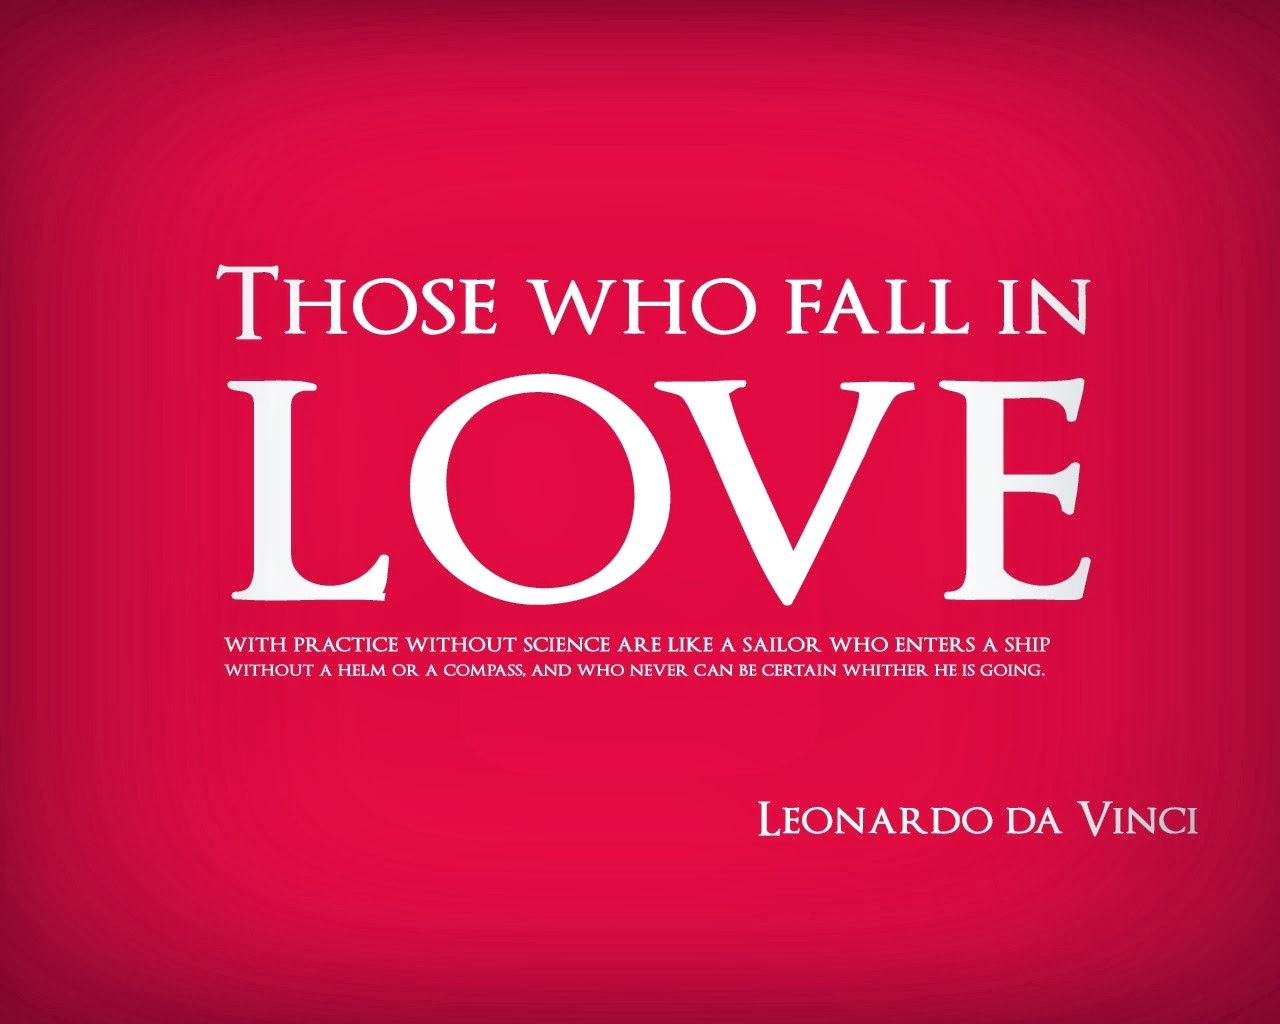 Famous Quotes On Love Classy Leonardo Da Vinci Quote  Love Quotesfamous Authors